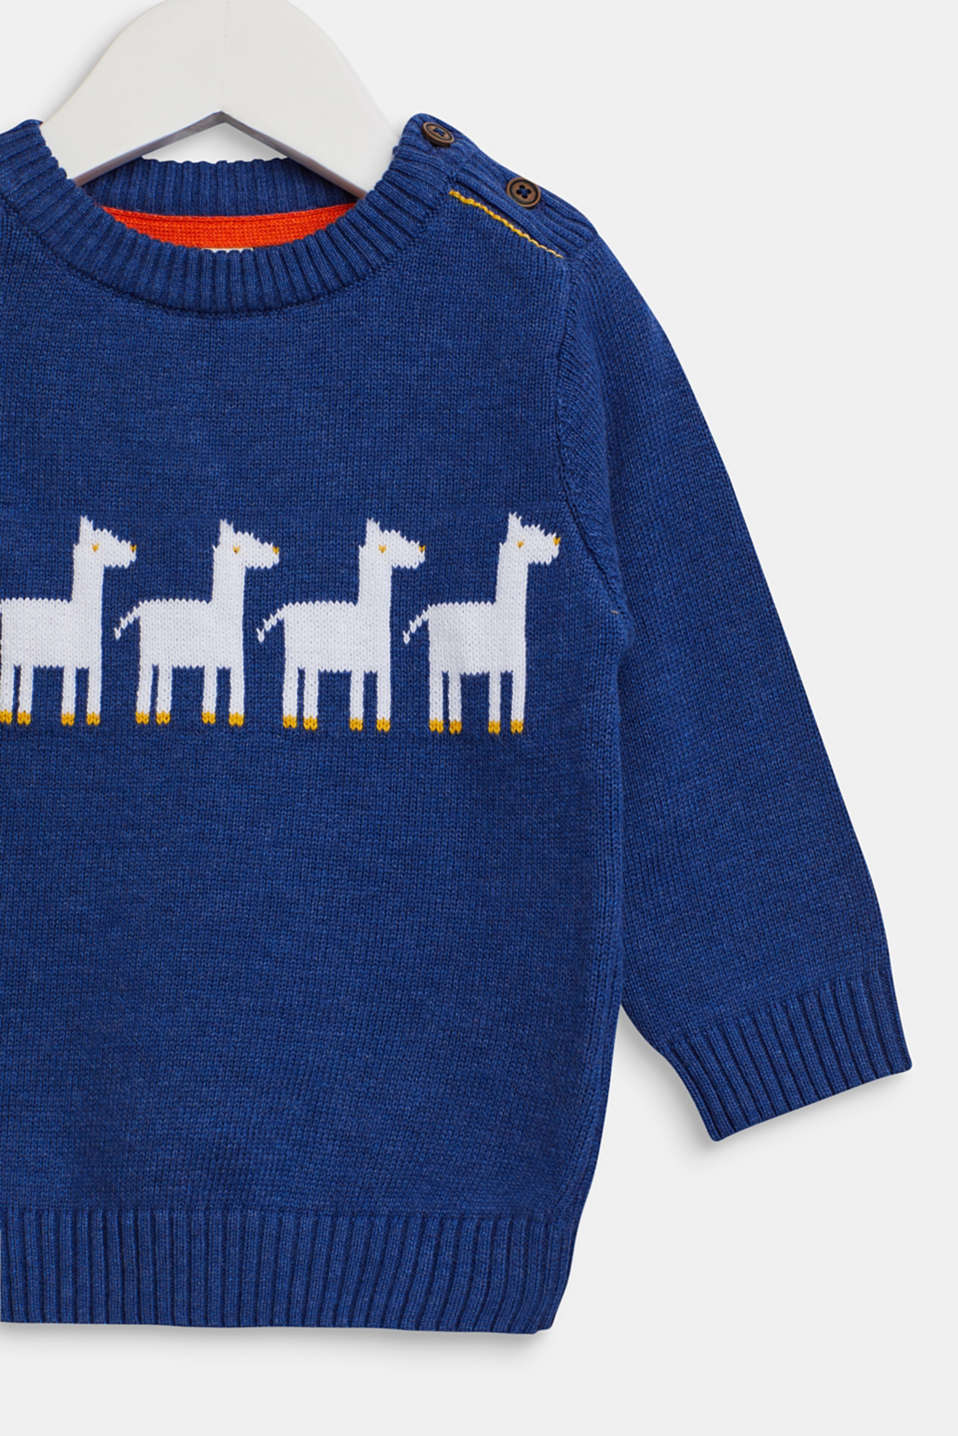 Jumper with llama intarsia, 100% cotton, LCINDIGO, detail image number 2